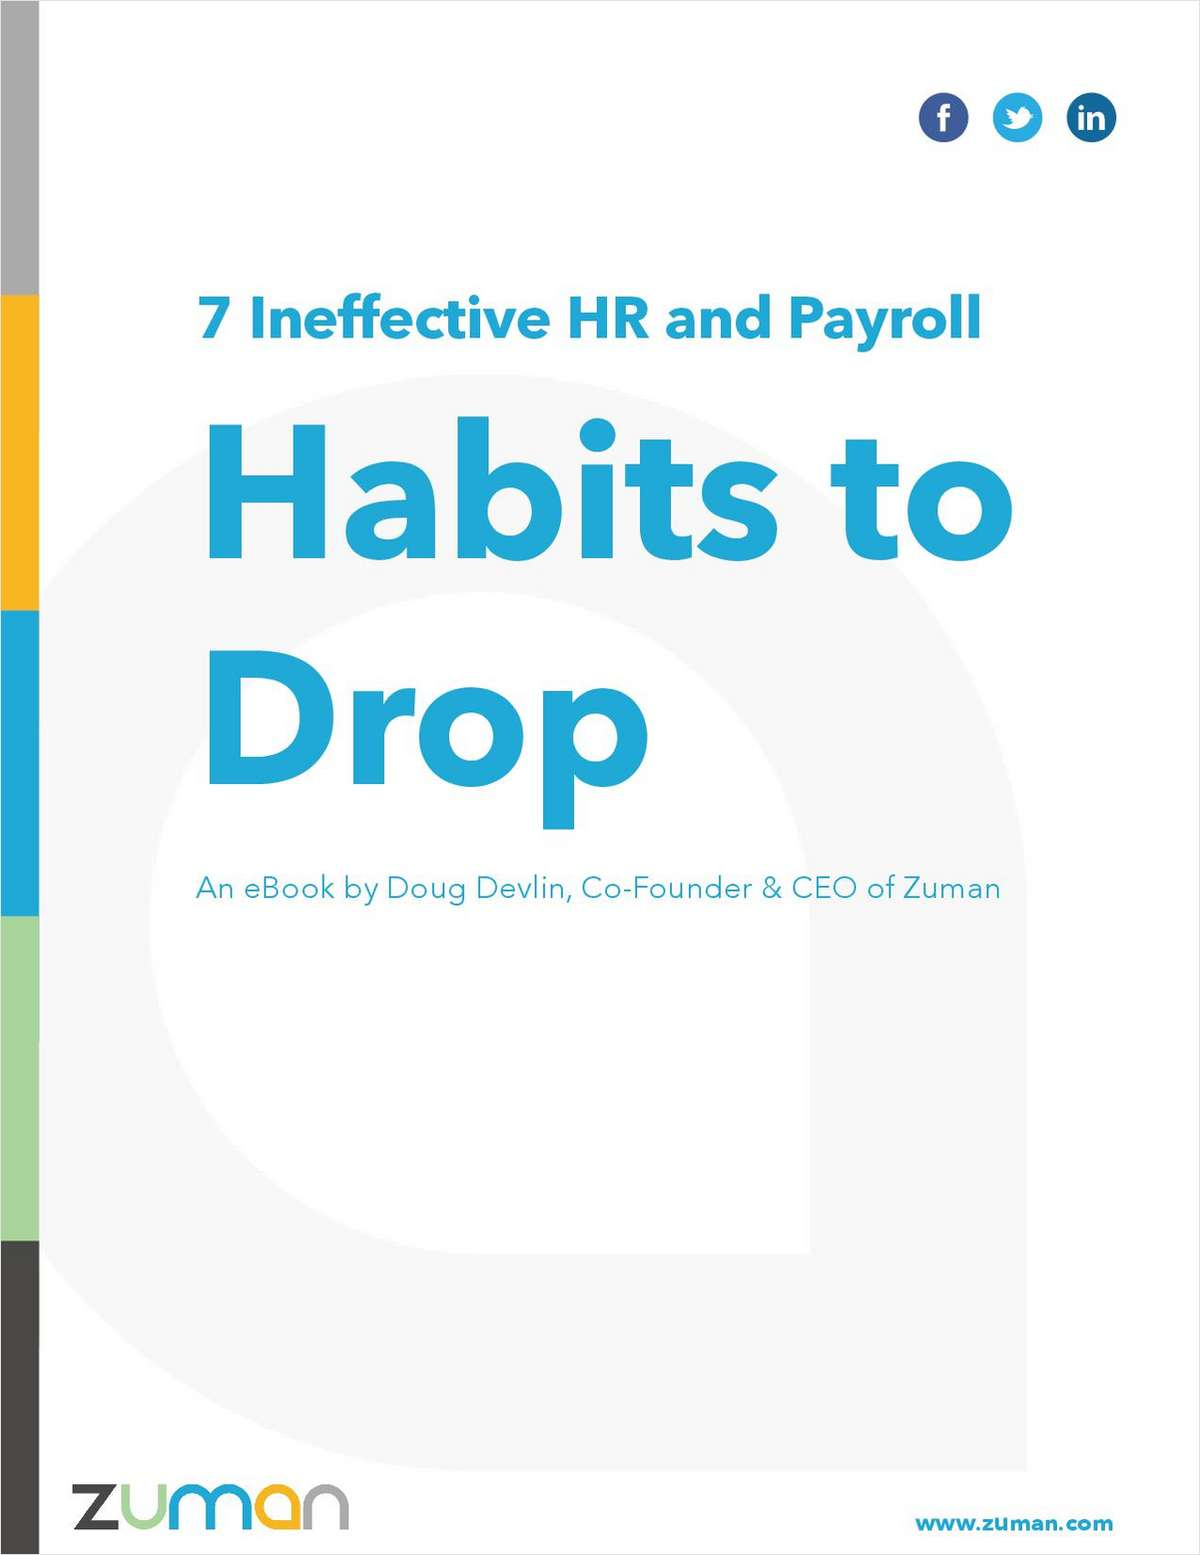 7 Ineffective HR and Payroll Habits to Drop